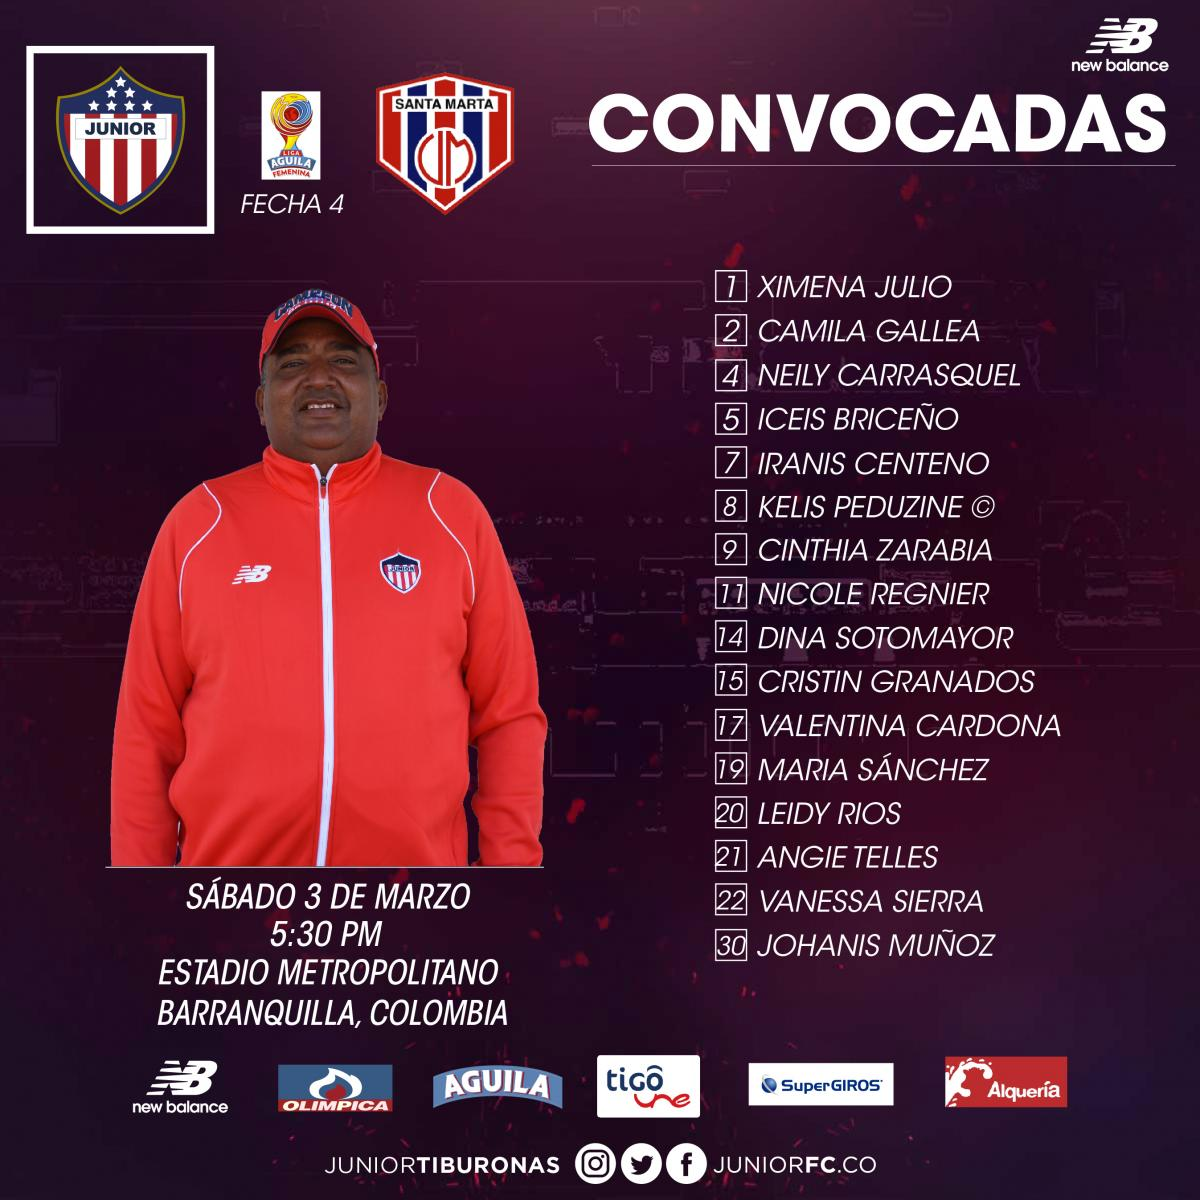 CONVOCADAS VS UNION-03.jpg